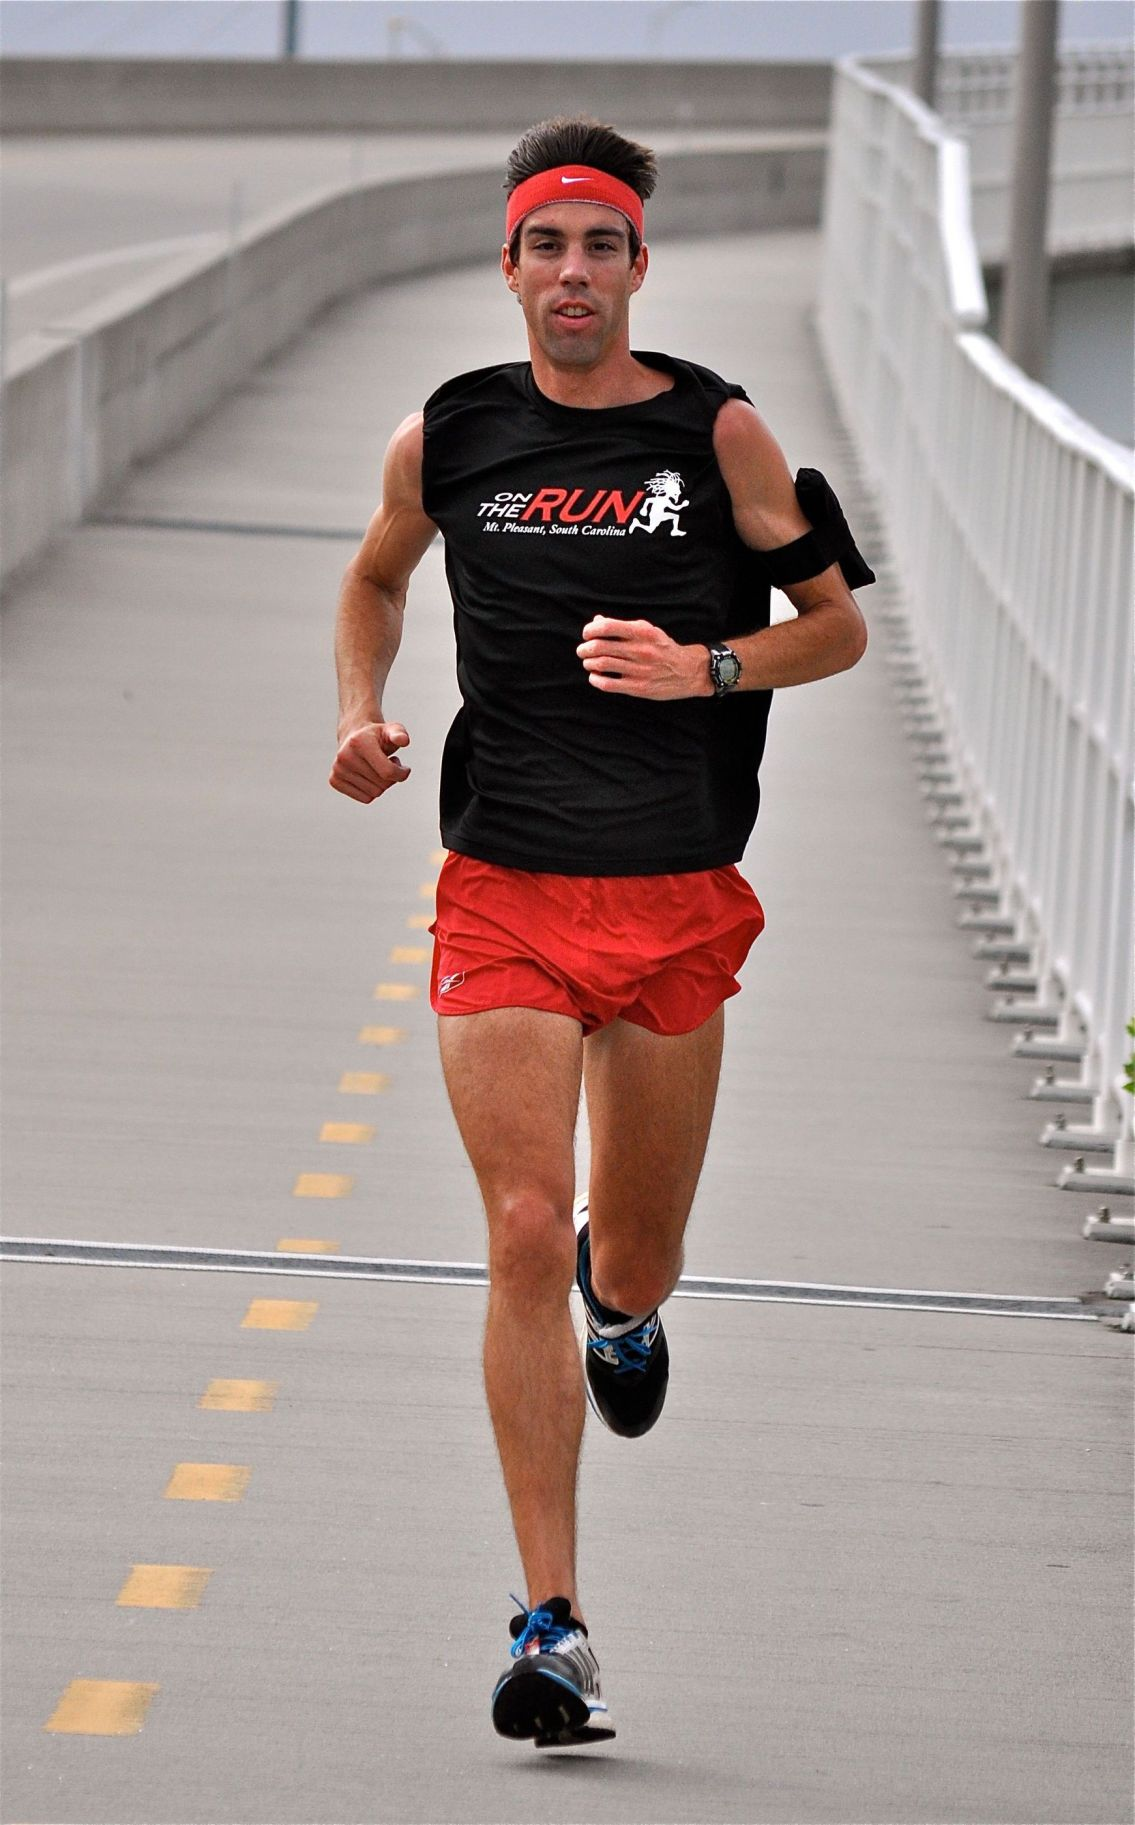 State's top runner allergic to own sweat